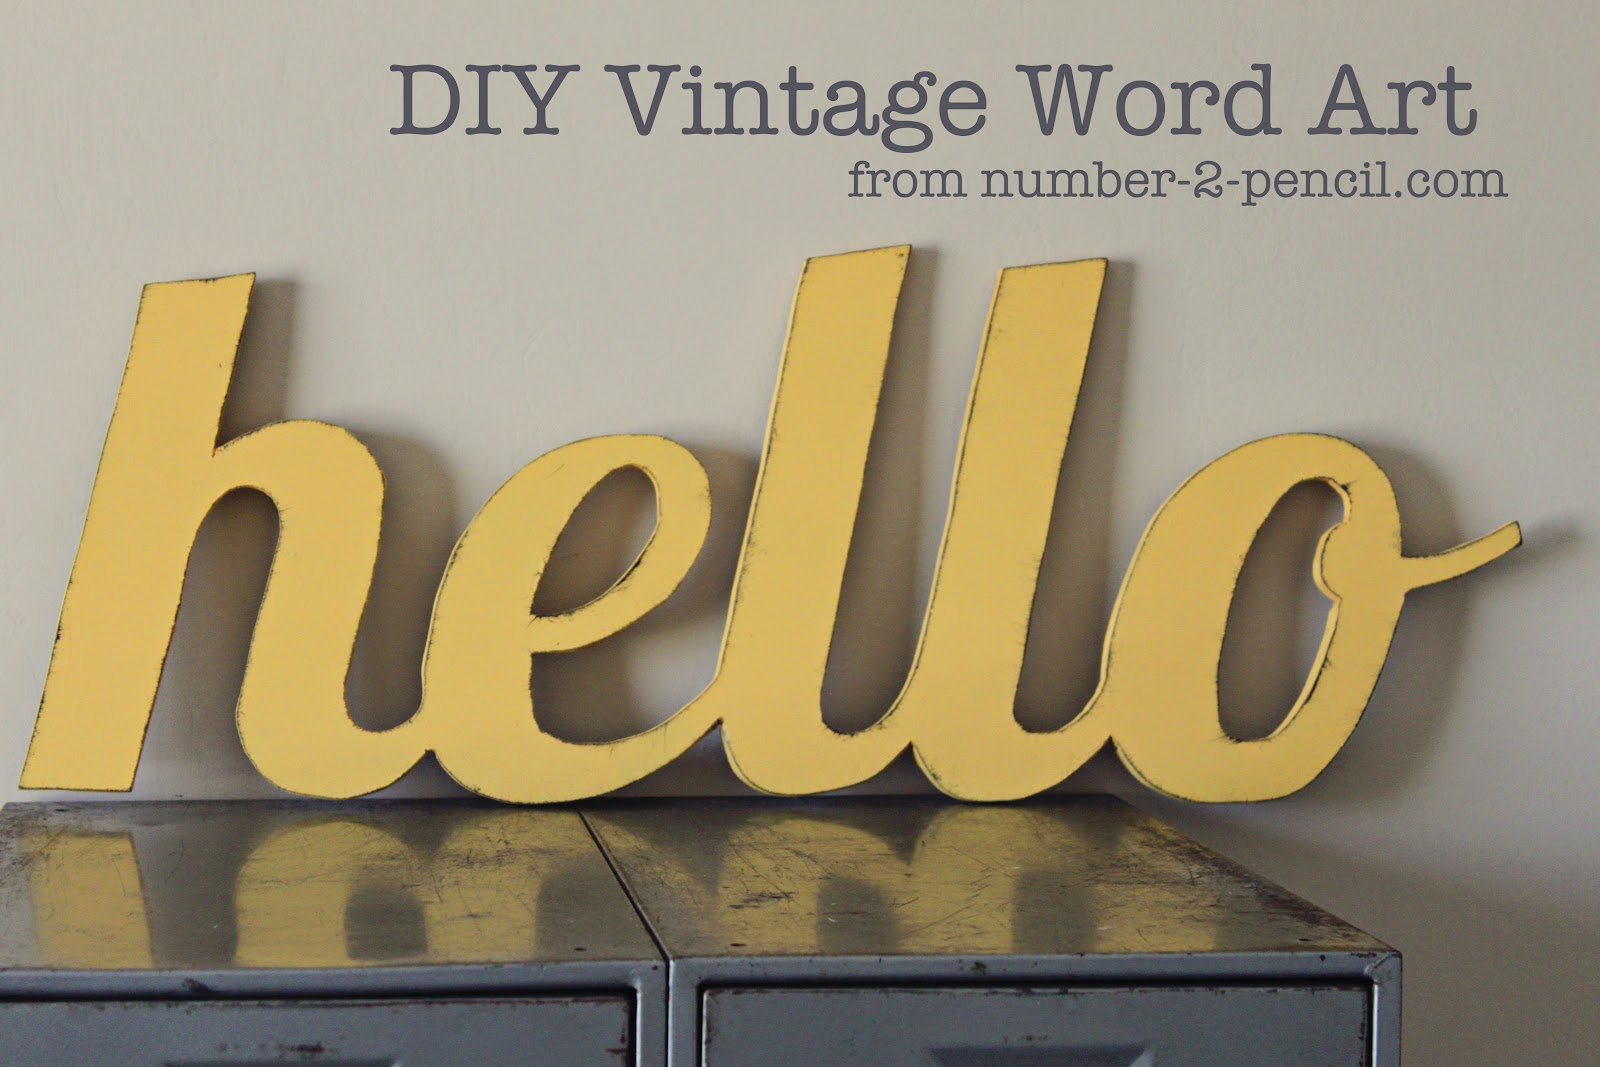 DIY Vintage Word Art - No. 2 Pencil